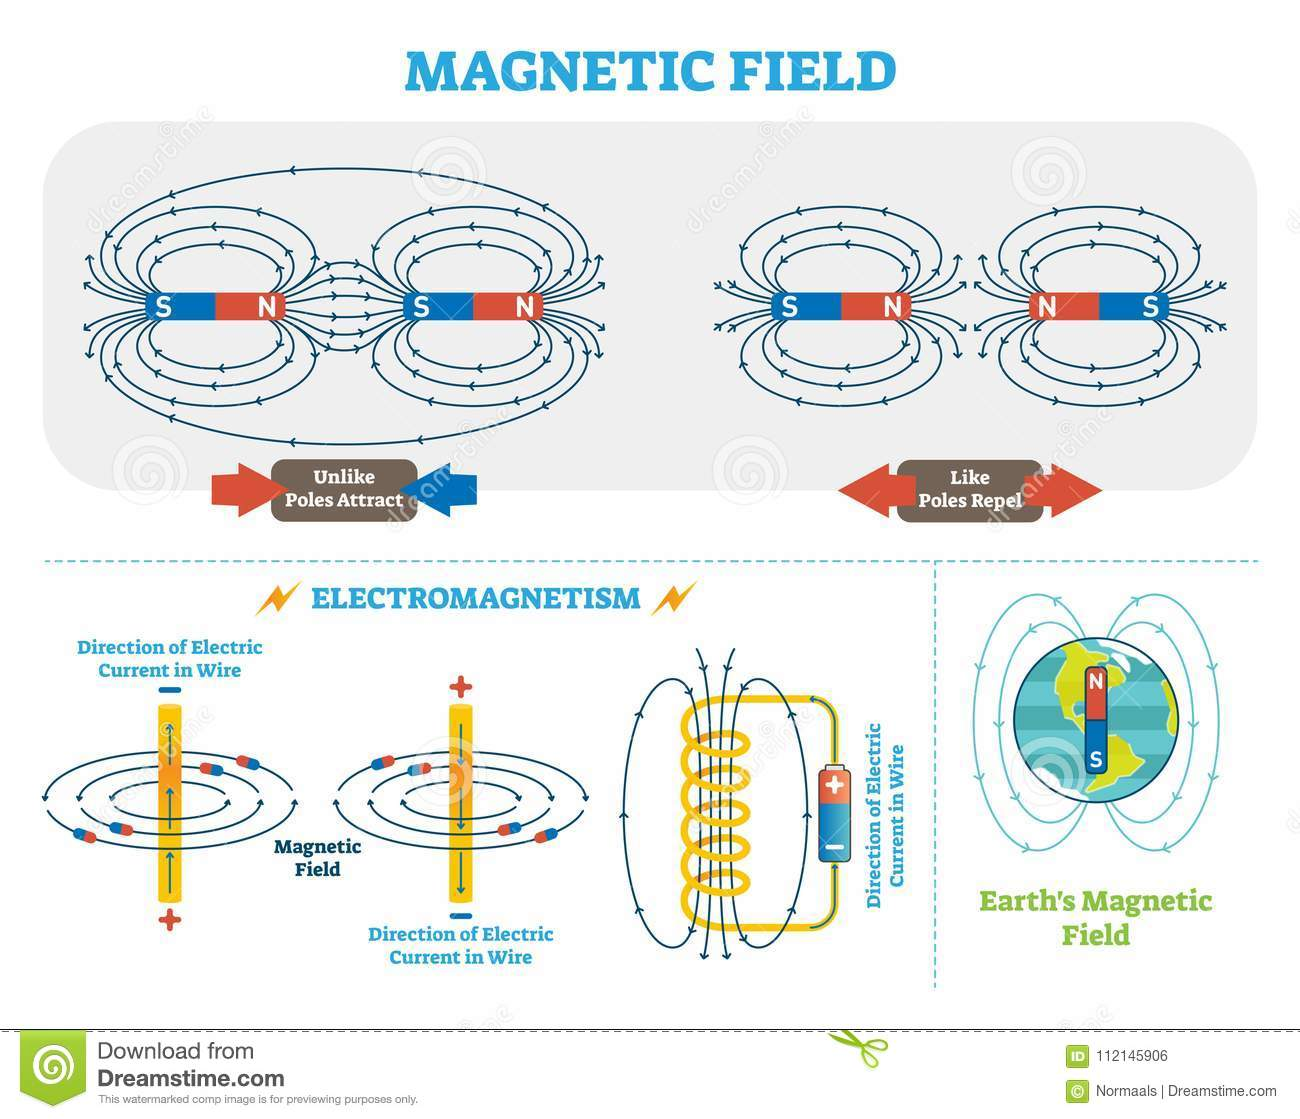 Scientific Magnetic Field and Electromagnetism vector illustration scheme. Electric current and magnetic poles scheme.